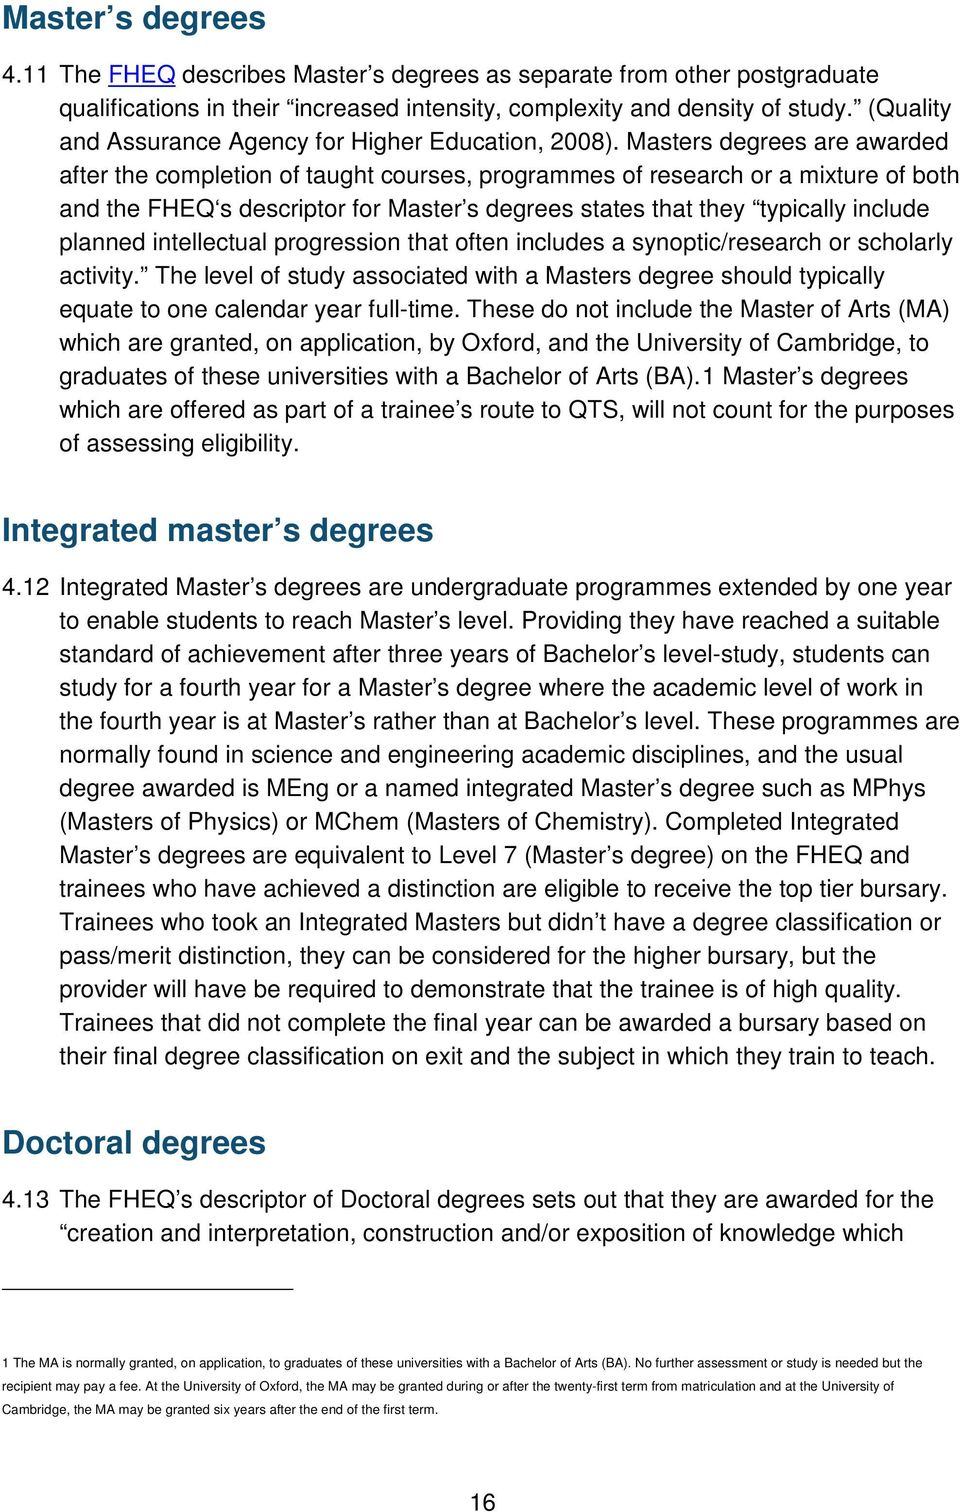 Masters degrees are awarded after the completion of taught courses, programmes of research or a mixture of both and the FHEQ s descriptor for Master s degrees states that they typically include